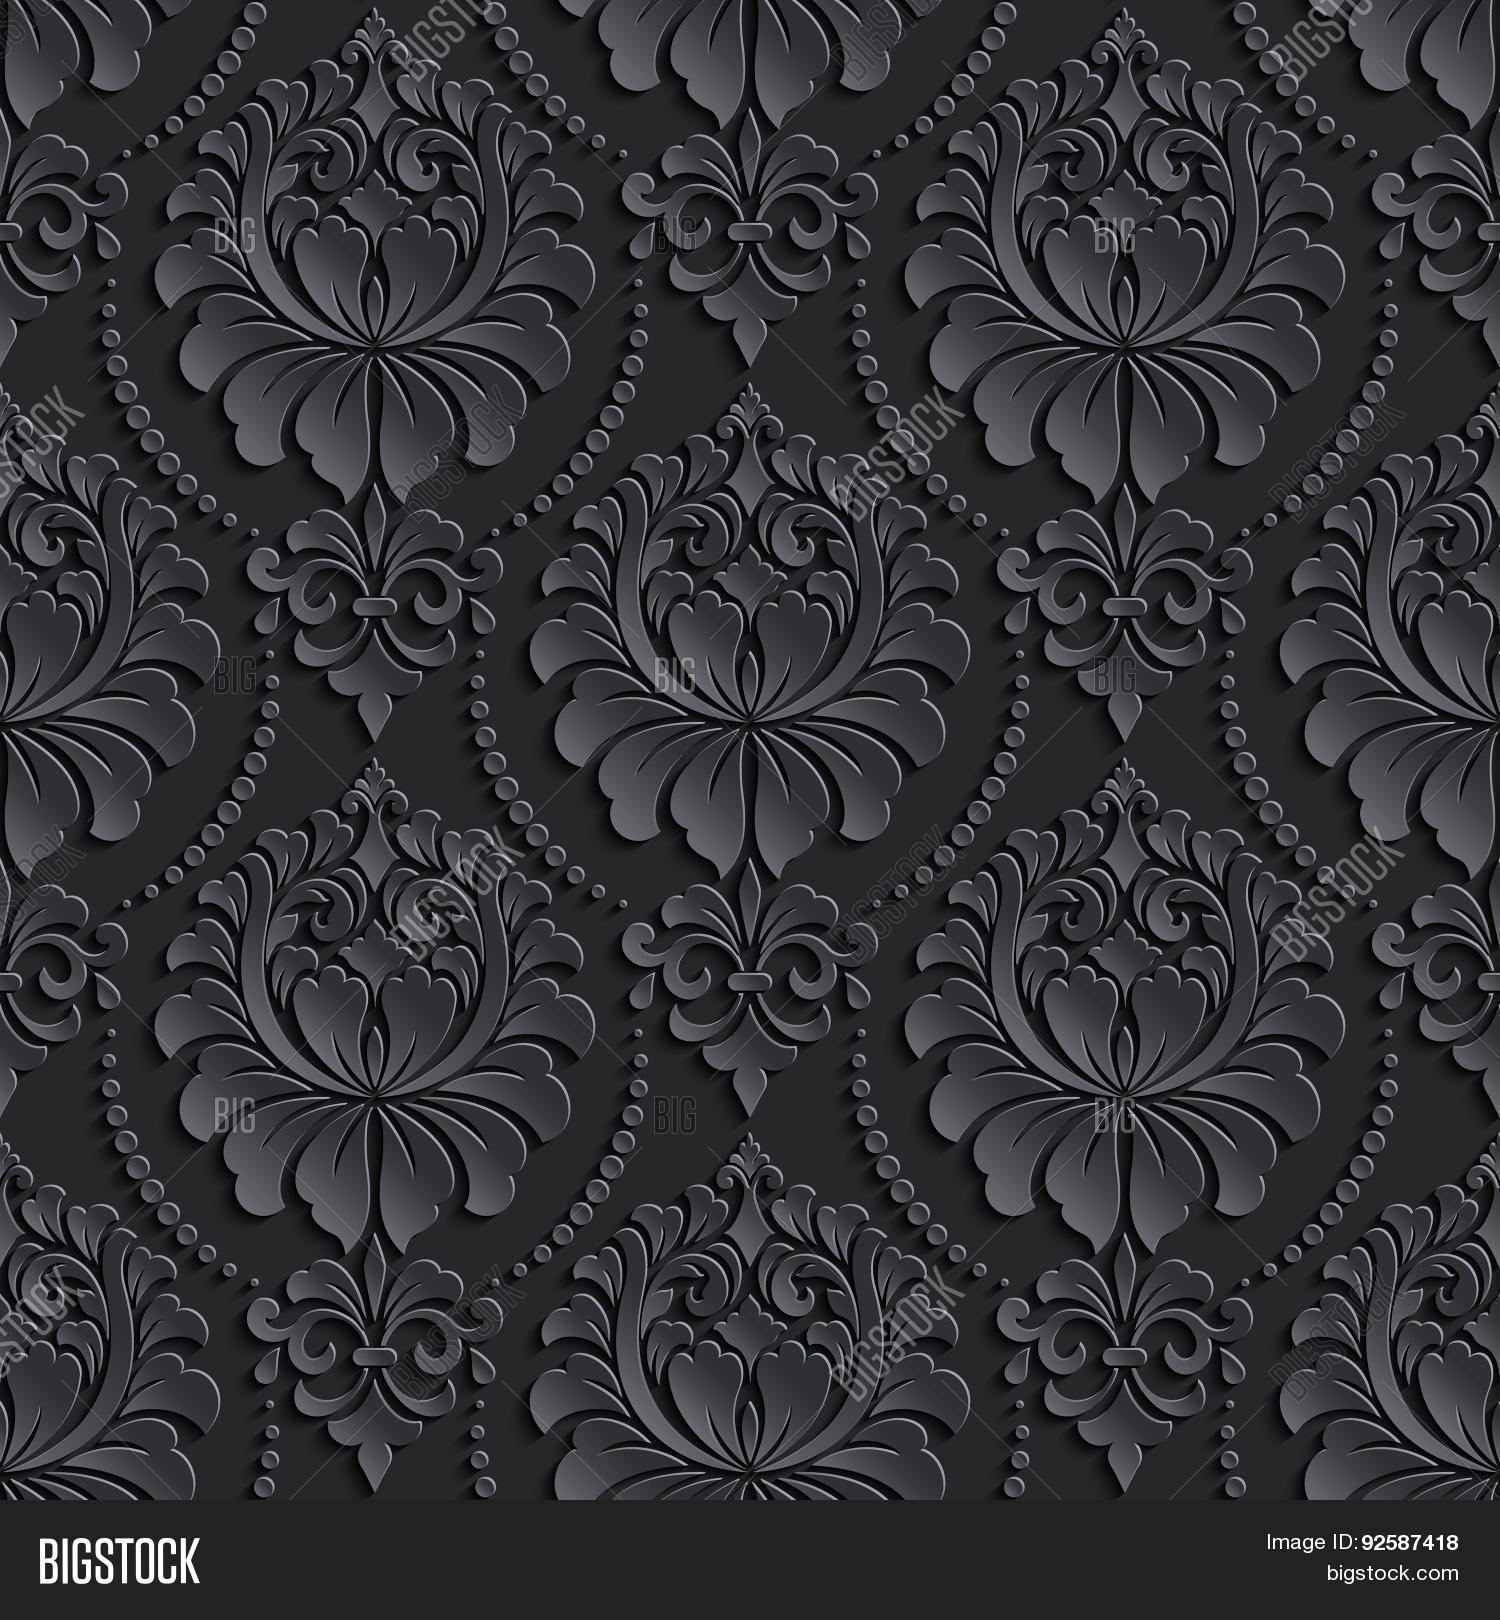 black and white damask wallpaper wallpapers - DriverLayer ...